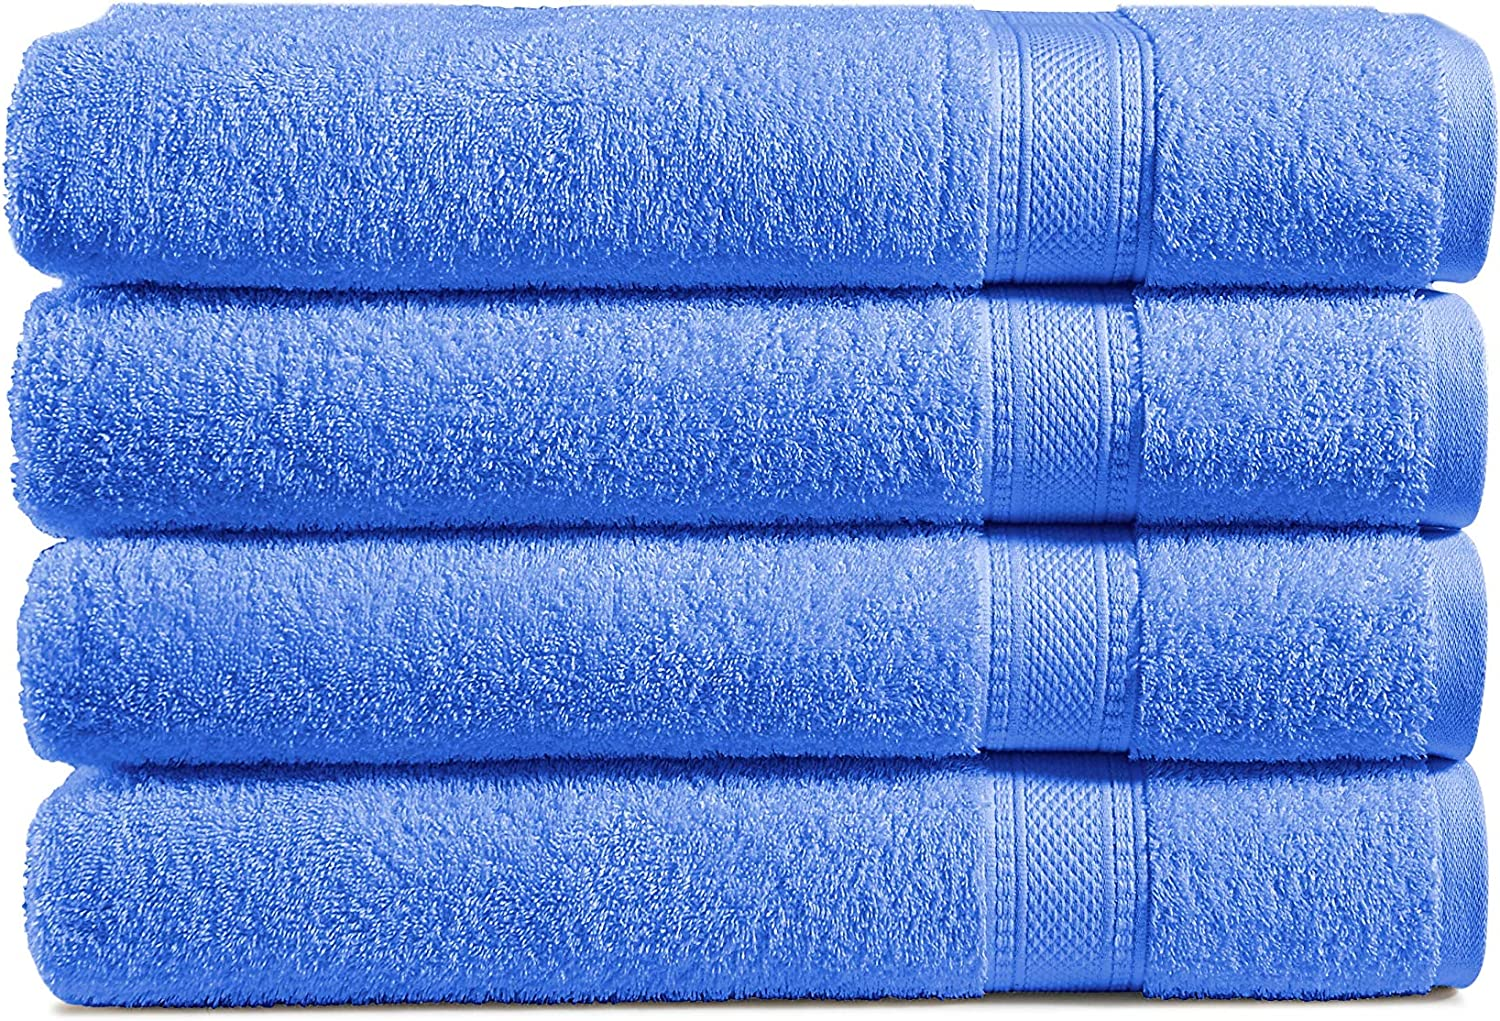 100 Cotton 4 Piece Bath Towel Set 500 Gsm Luxuriously Sized 30 X 54 Inch Classic Amercian Construction Soft Highly Absorbent Machine Washable Blue Kitchen Dining